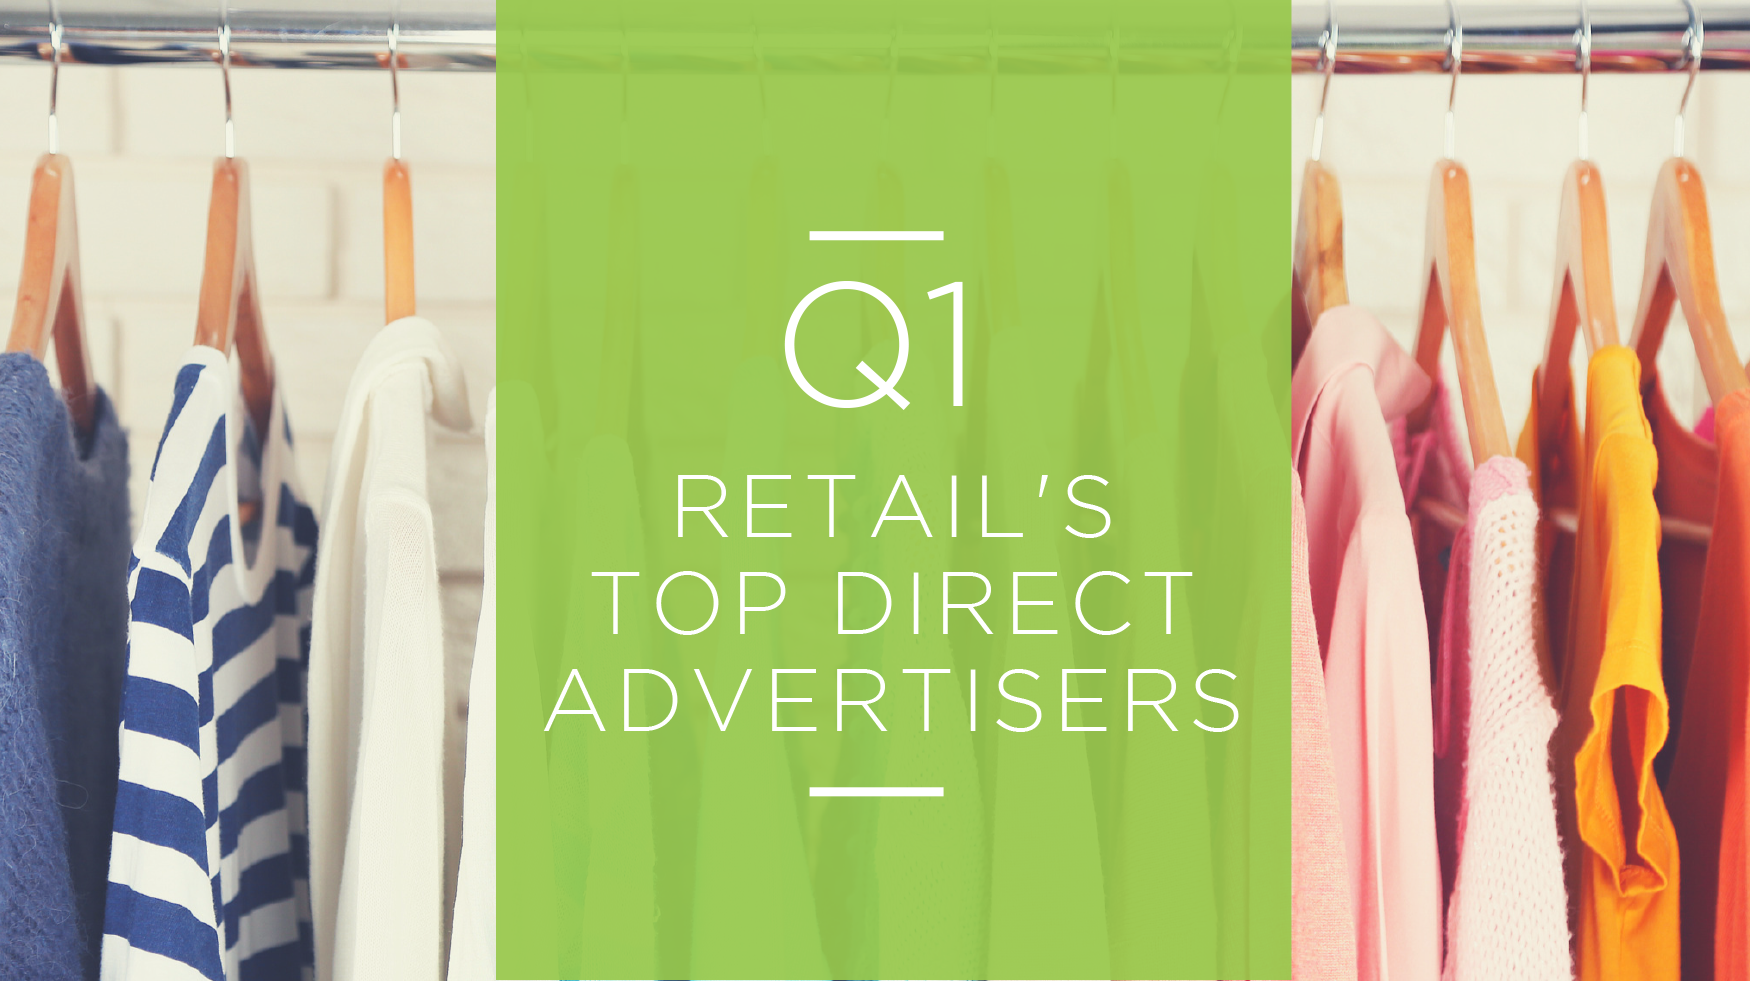 Retail's Top Direct Advertisers for Q1 - Featured Image